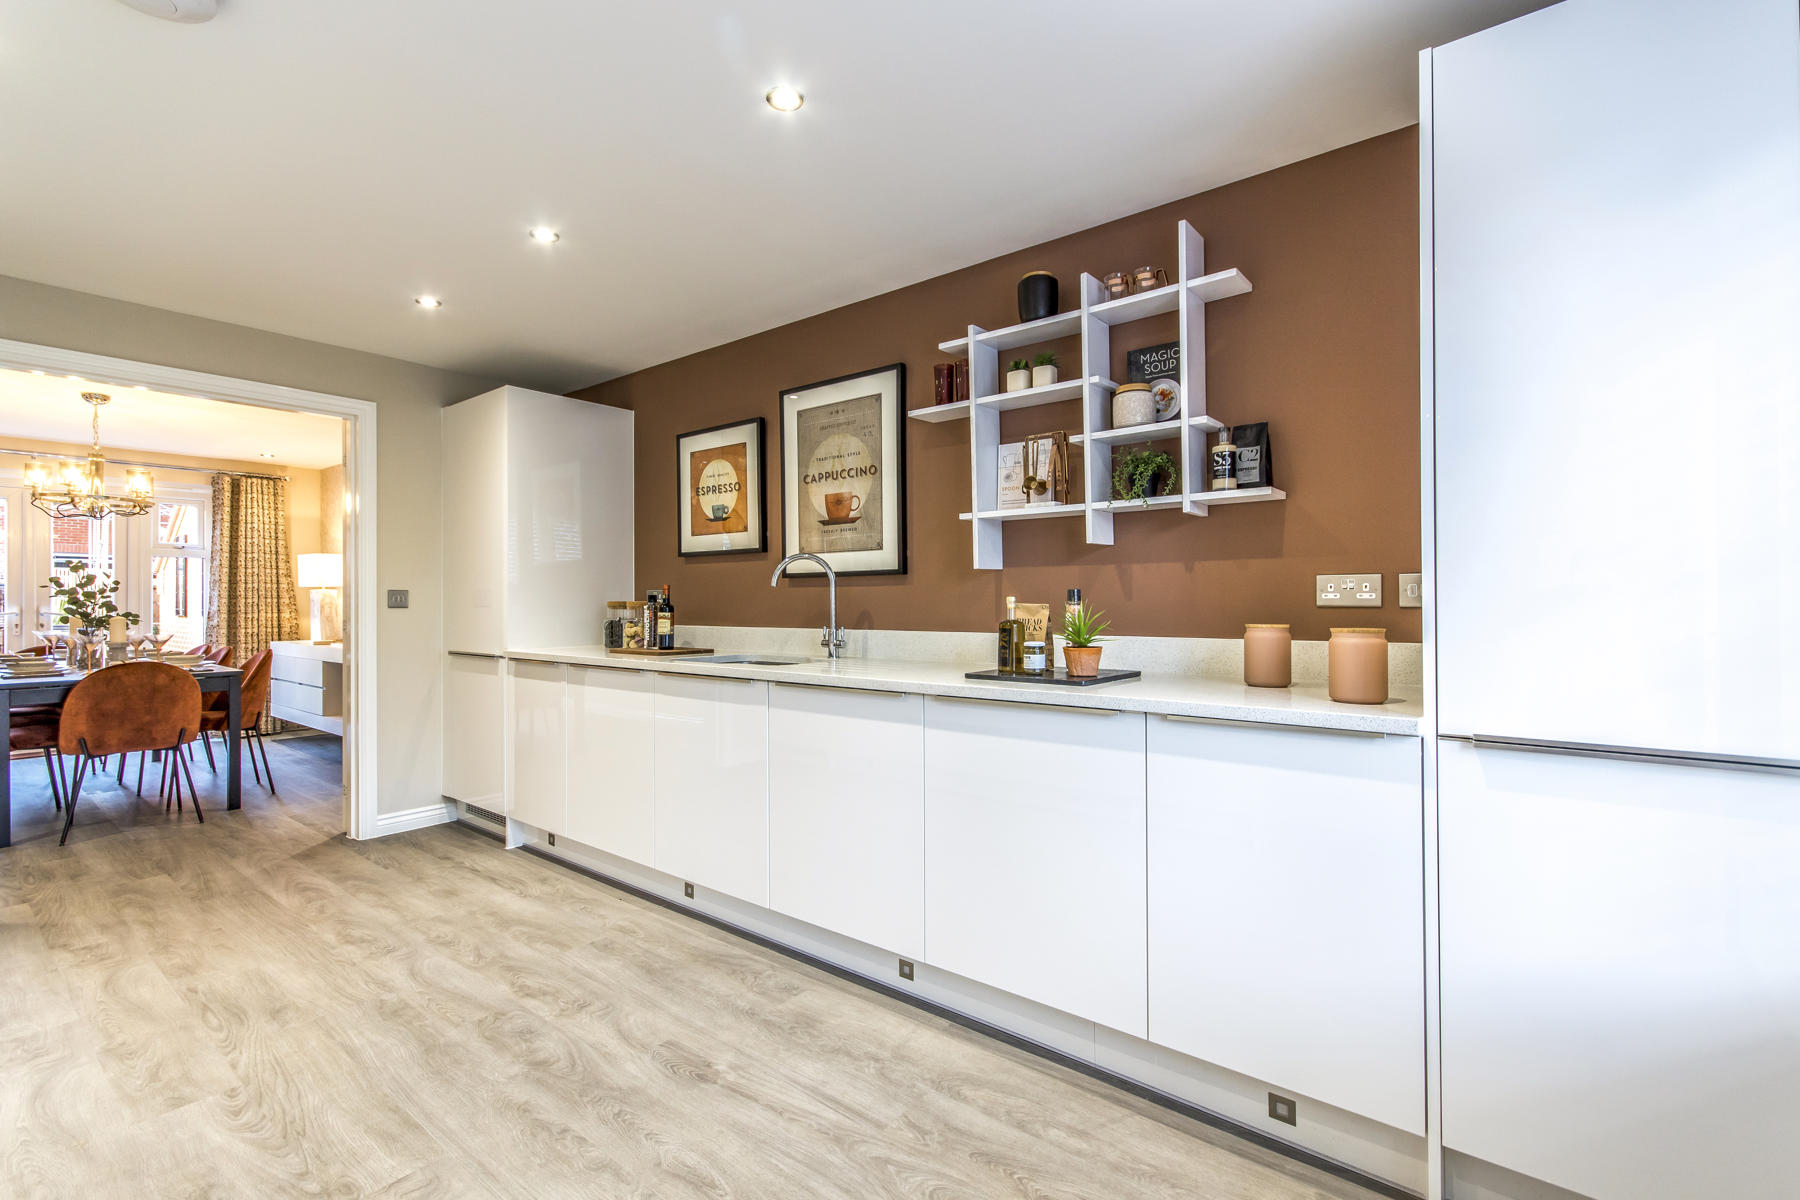 Thornford kitchen 1  - Edwalton Chase